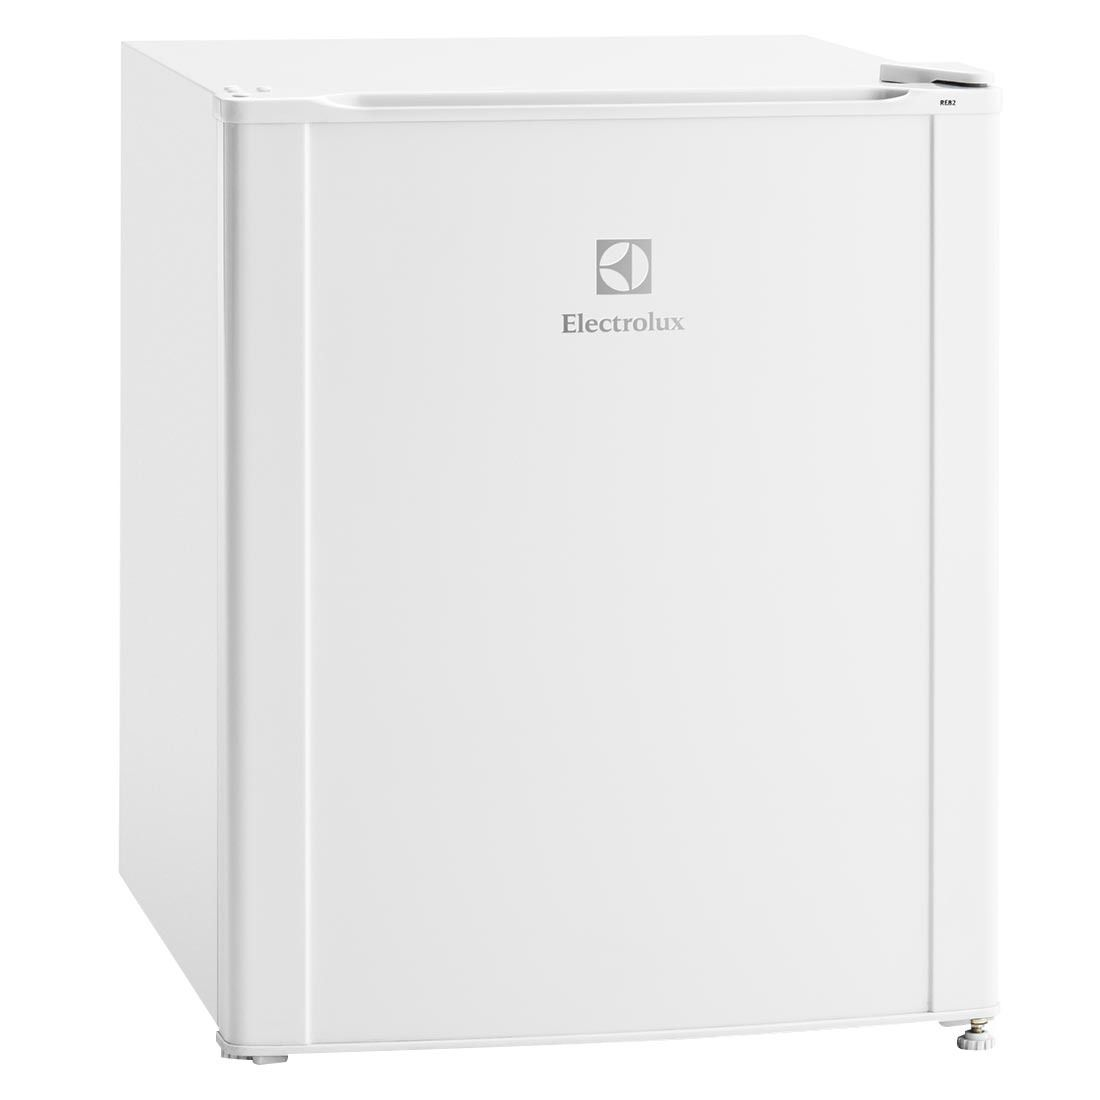 Frigobar Electrolux, 79 L, Compartimento Flex Box, Branco - RE80 - 220V